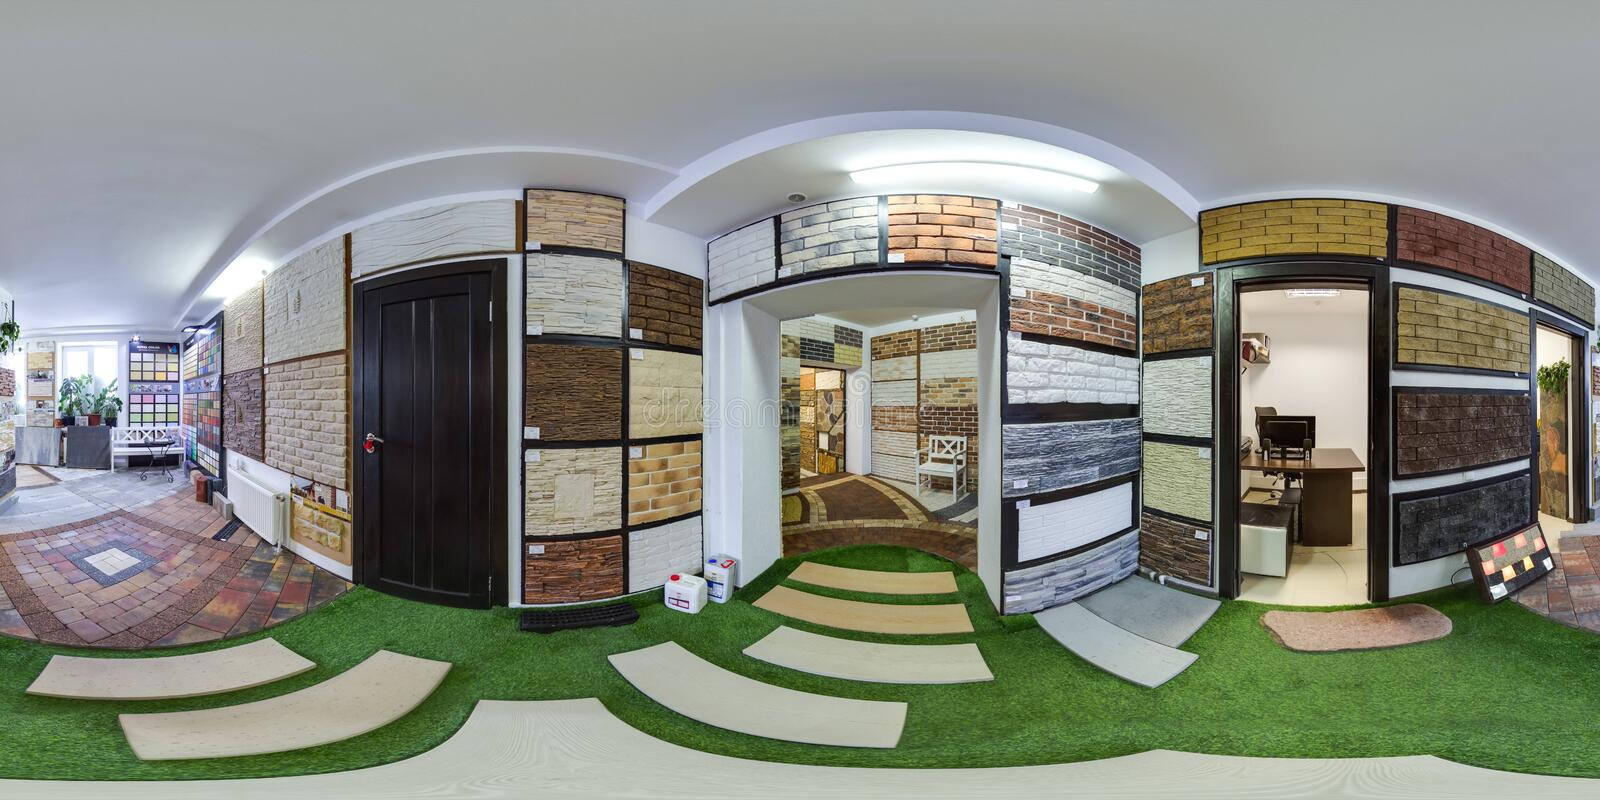 Moscow-2018: 3D spherical panorama with 360 degree viewing angle of the hardware store interior with paving slab and decorative ti. Les. Full equirectangular royalty free stock photo